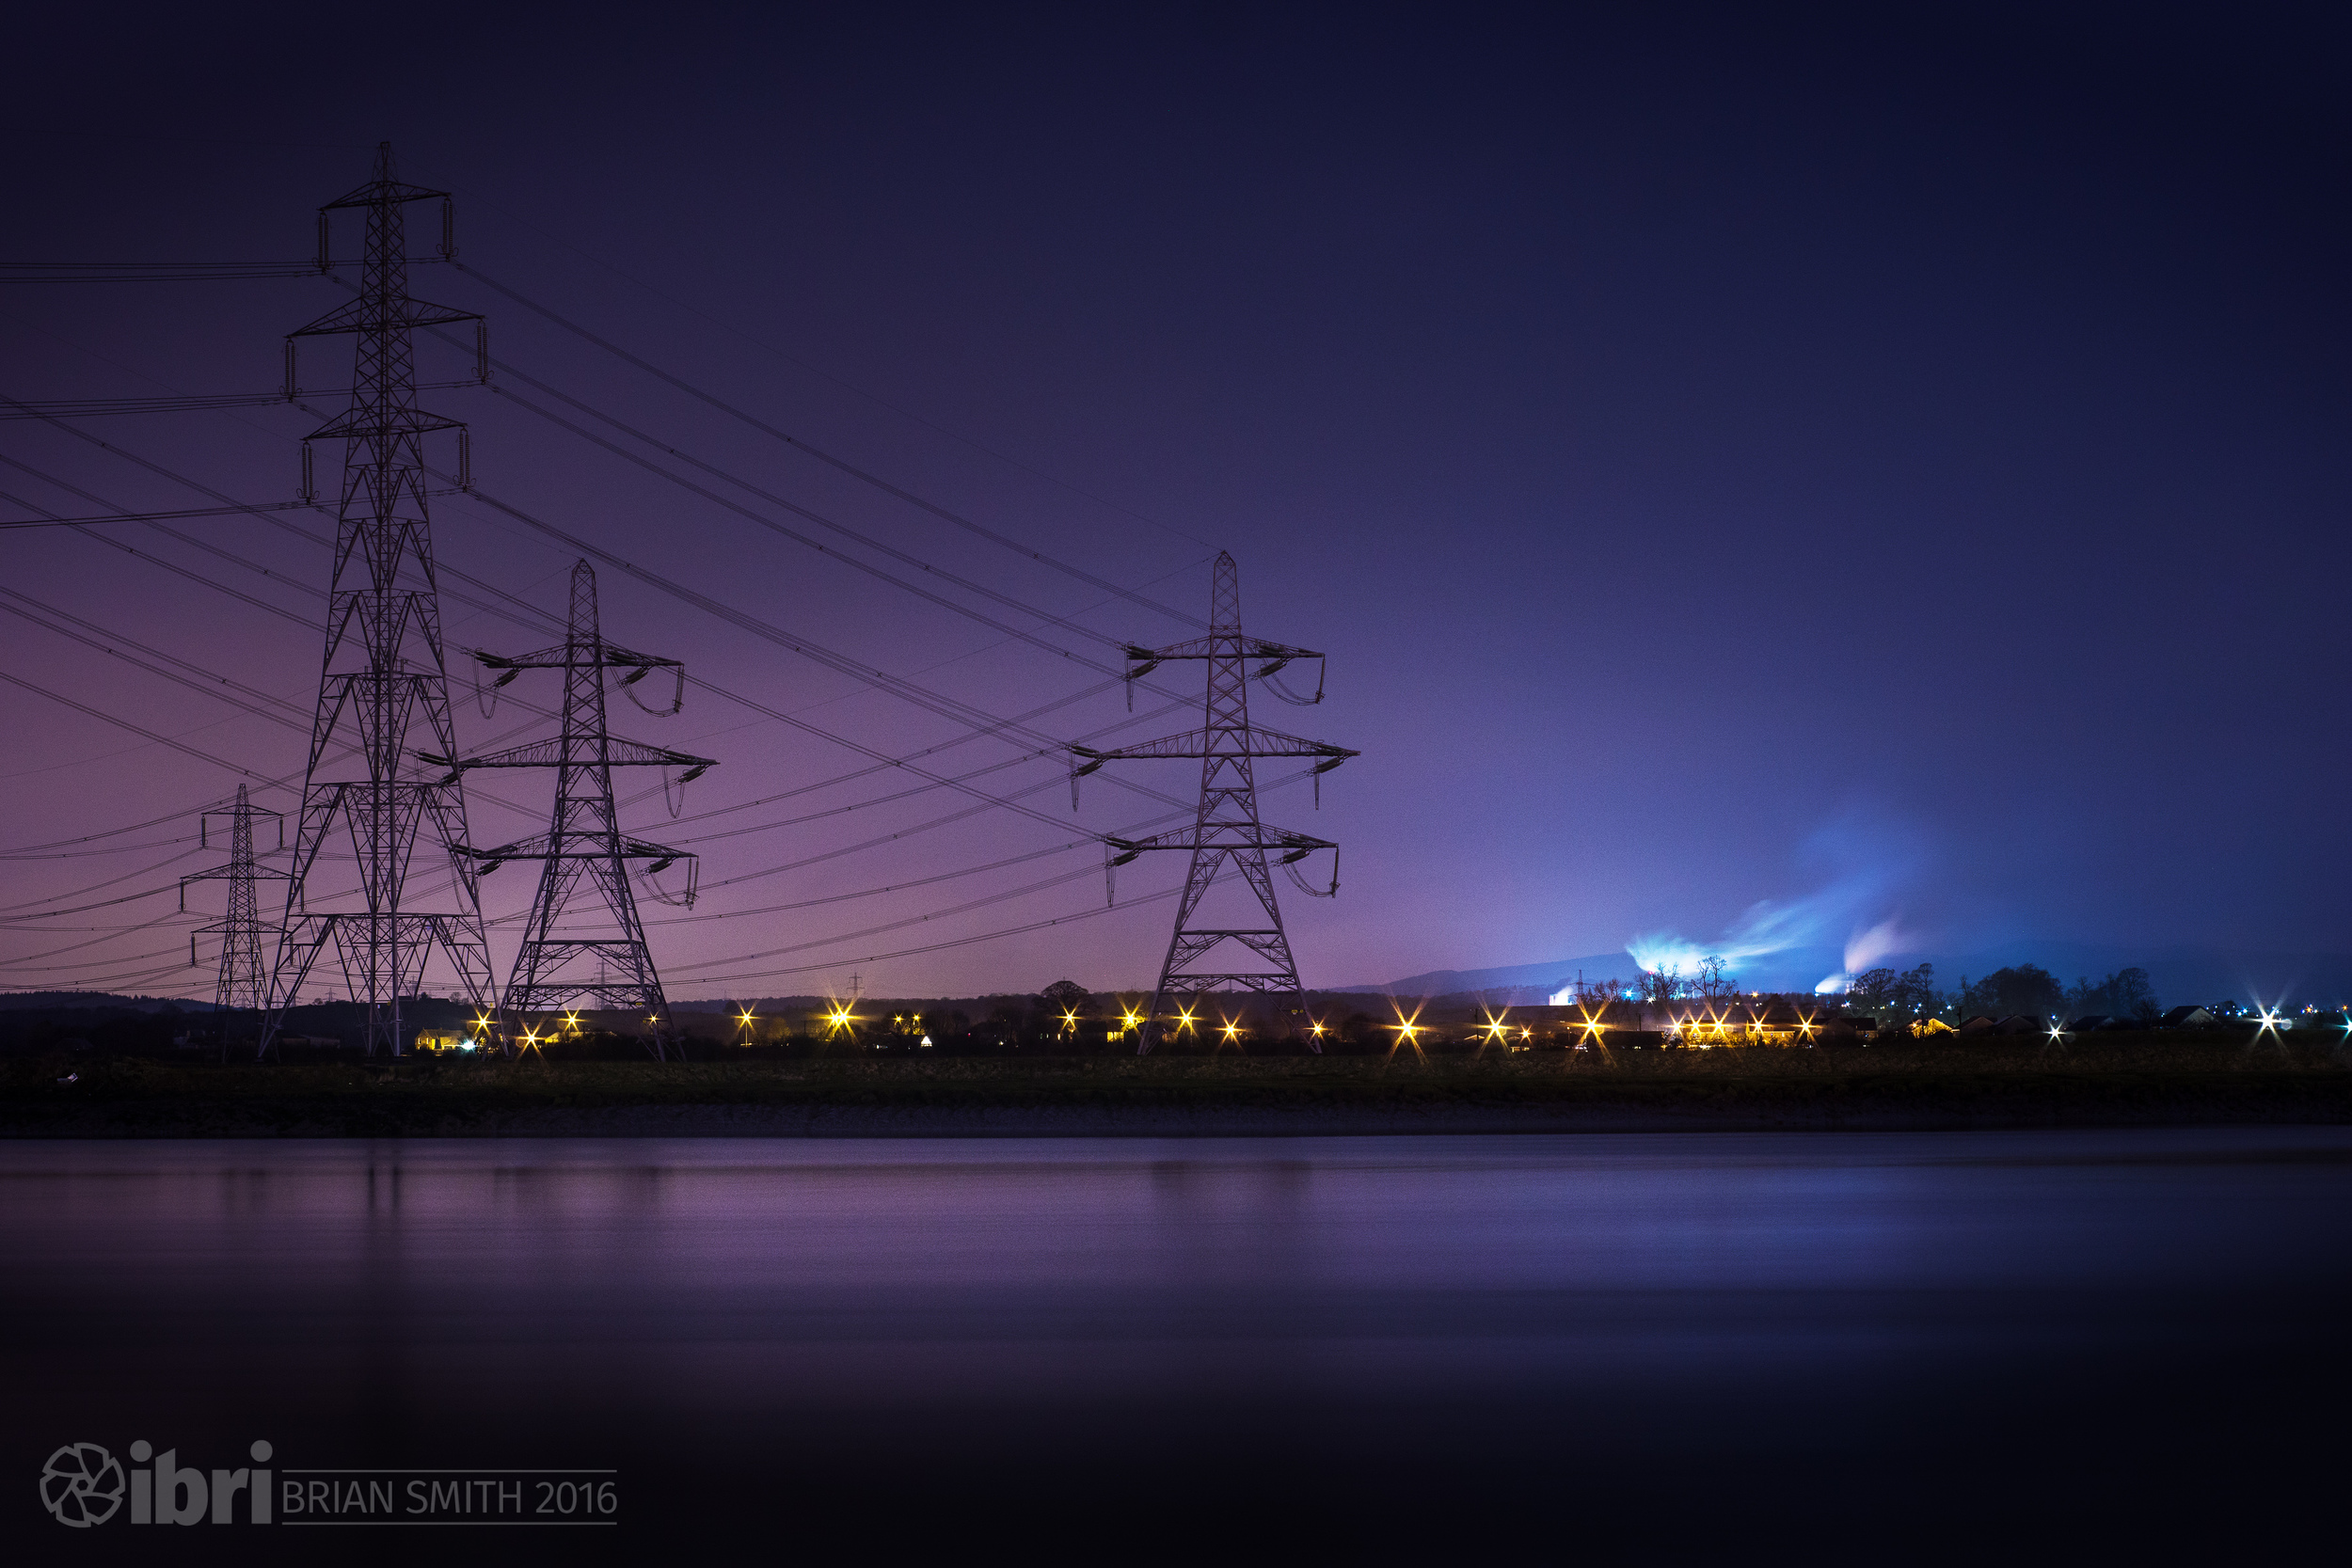 Powerlines heading south over on the other bank of the Forth, and the MDF manufacturing plant blowing off steam at Cowie.